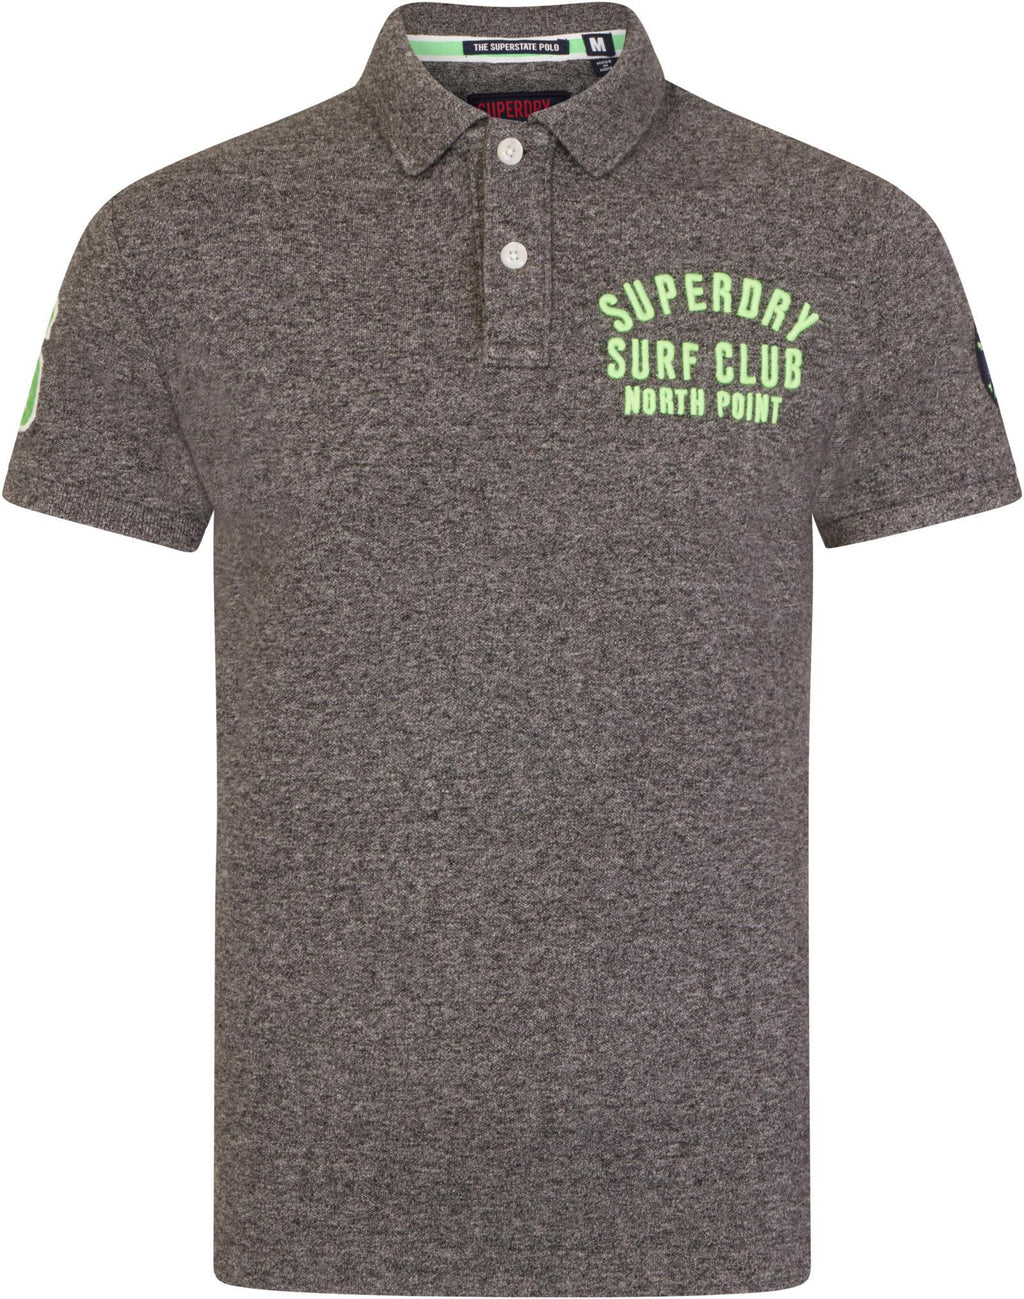 Superdry Classic Superstate Short Sleeve Polo Shirt Grey